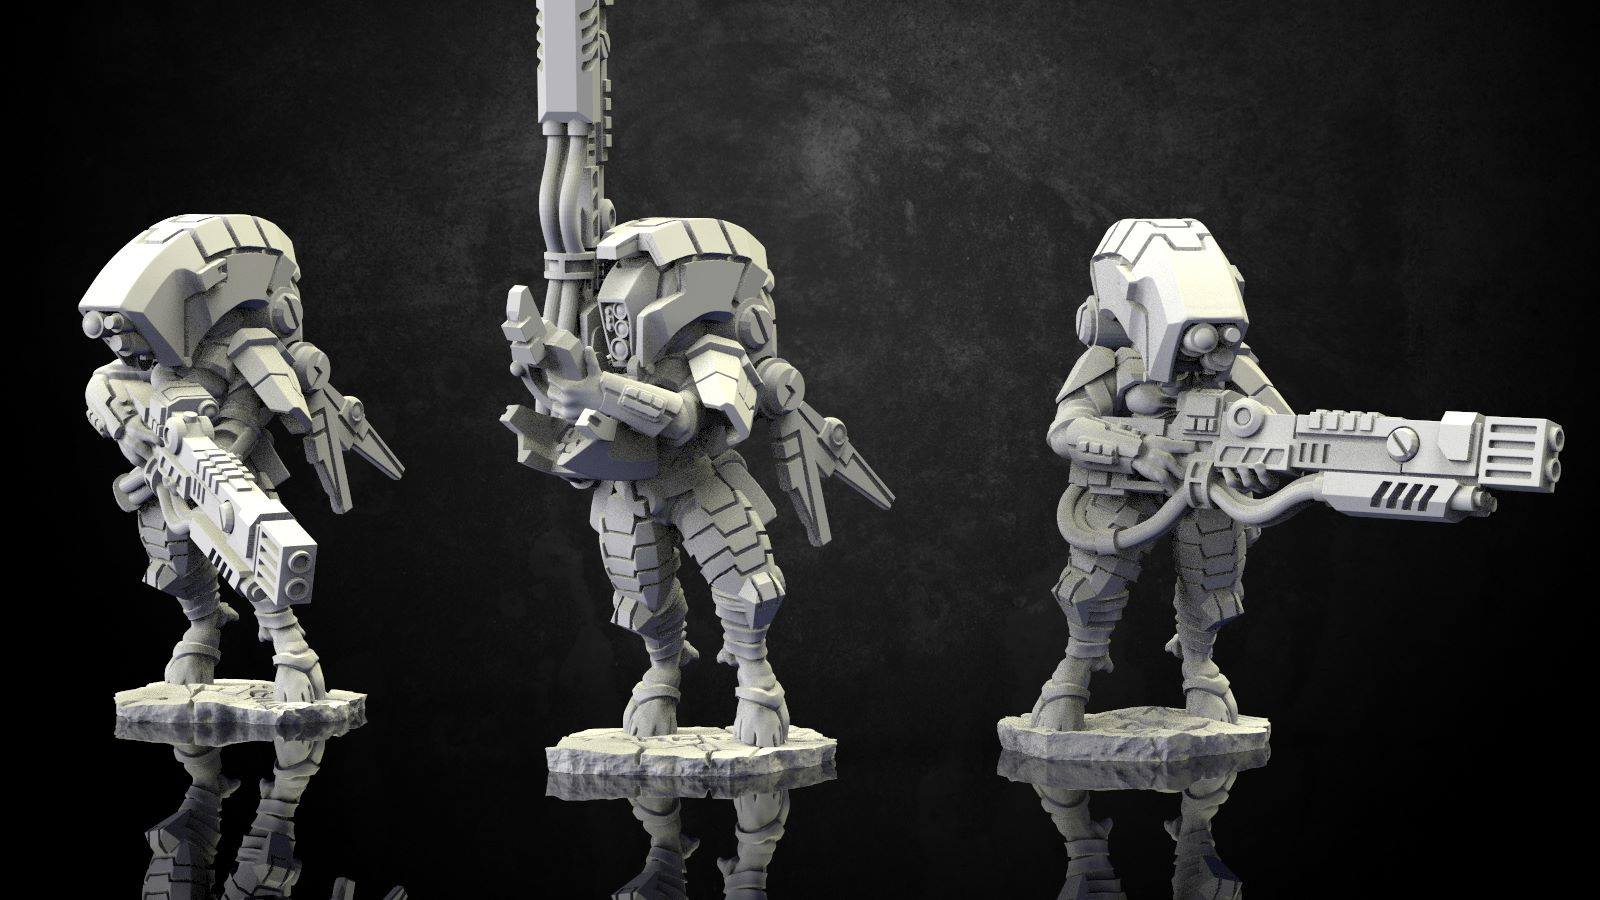 Wargame Exclusive Working On Stealthy Alien Operatives